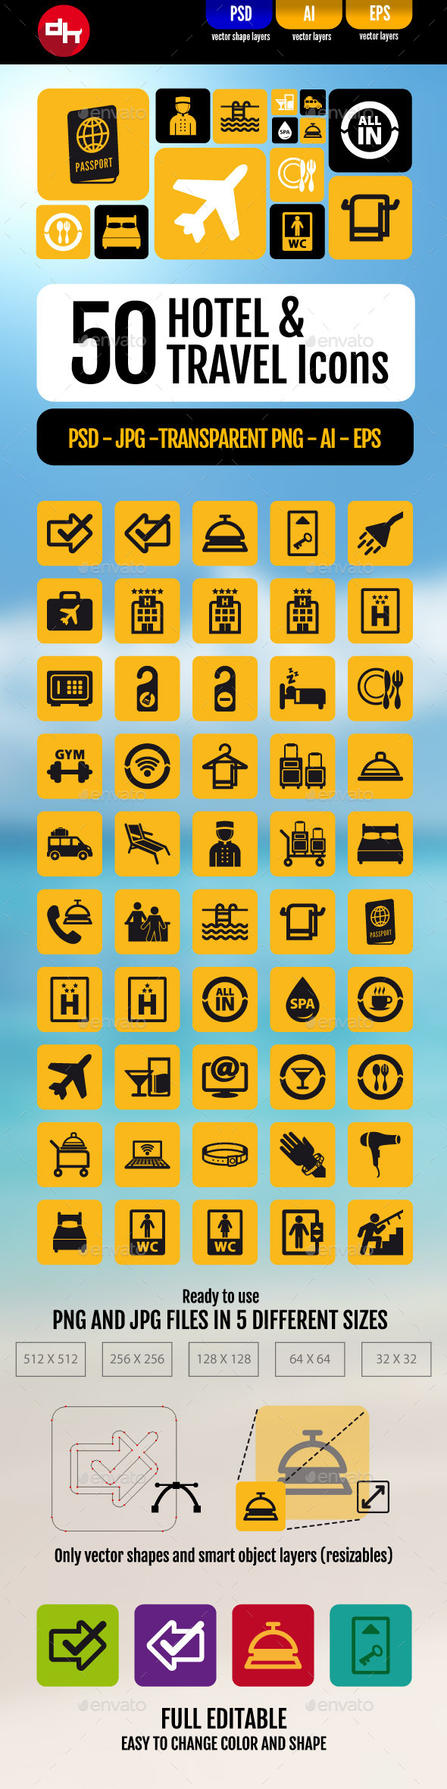 50 Hotel and Travel Icons by doghead